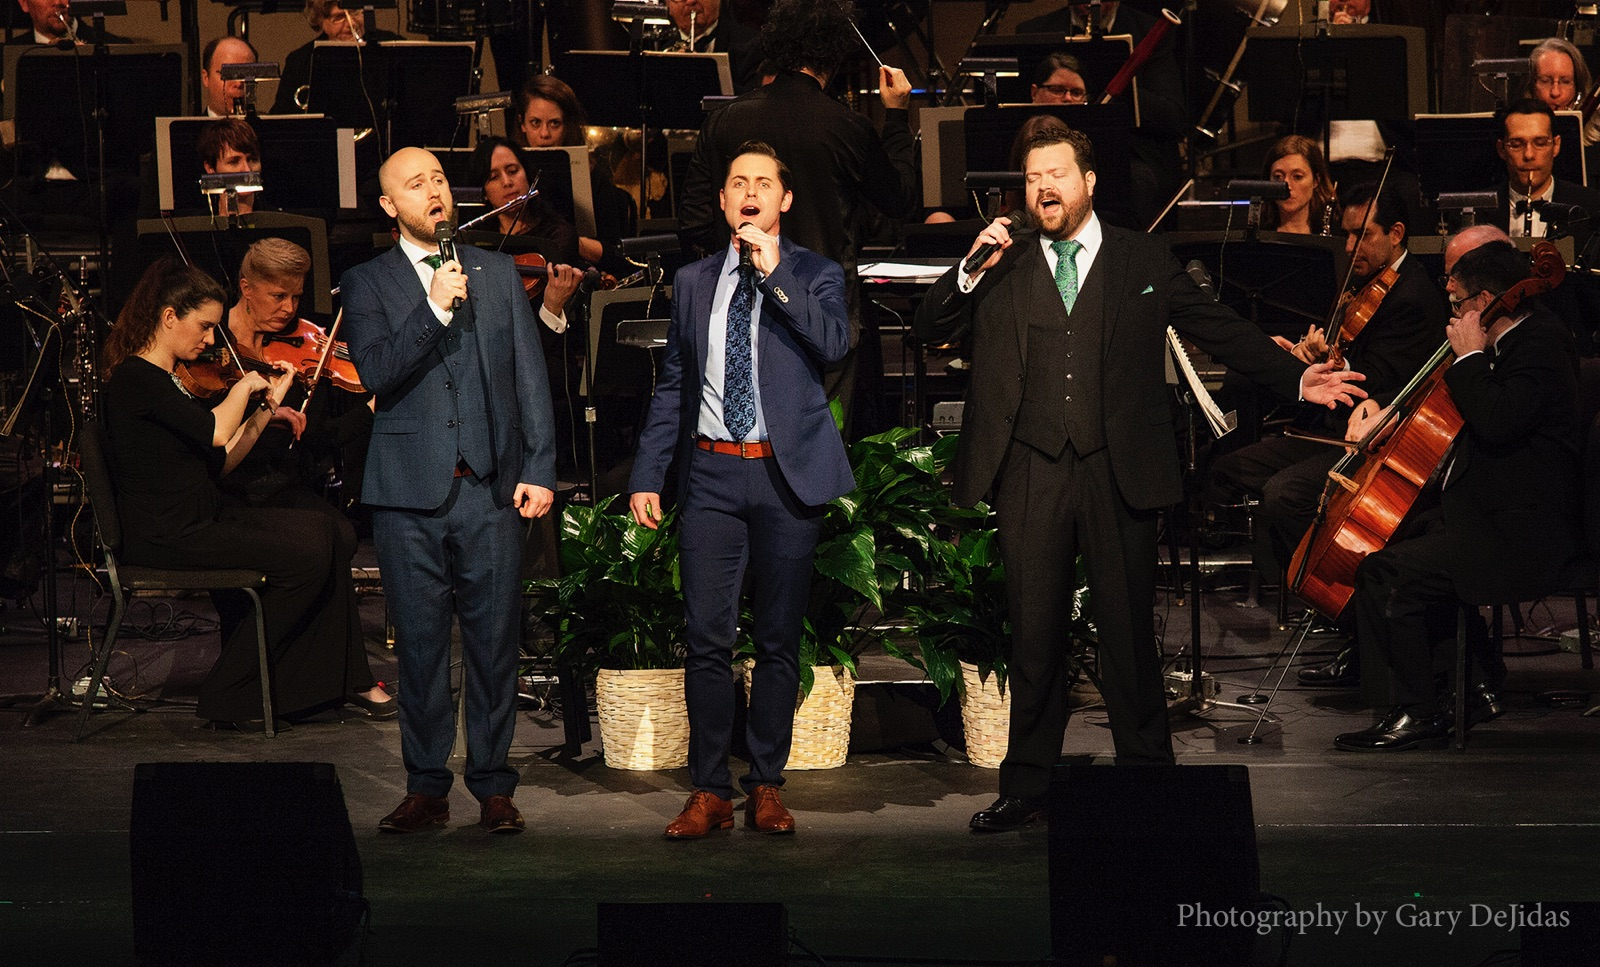 David O'Leary, Michael and Karl Scully. TRI : The New Irish Tenors  and the Orlando Philharmonic.